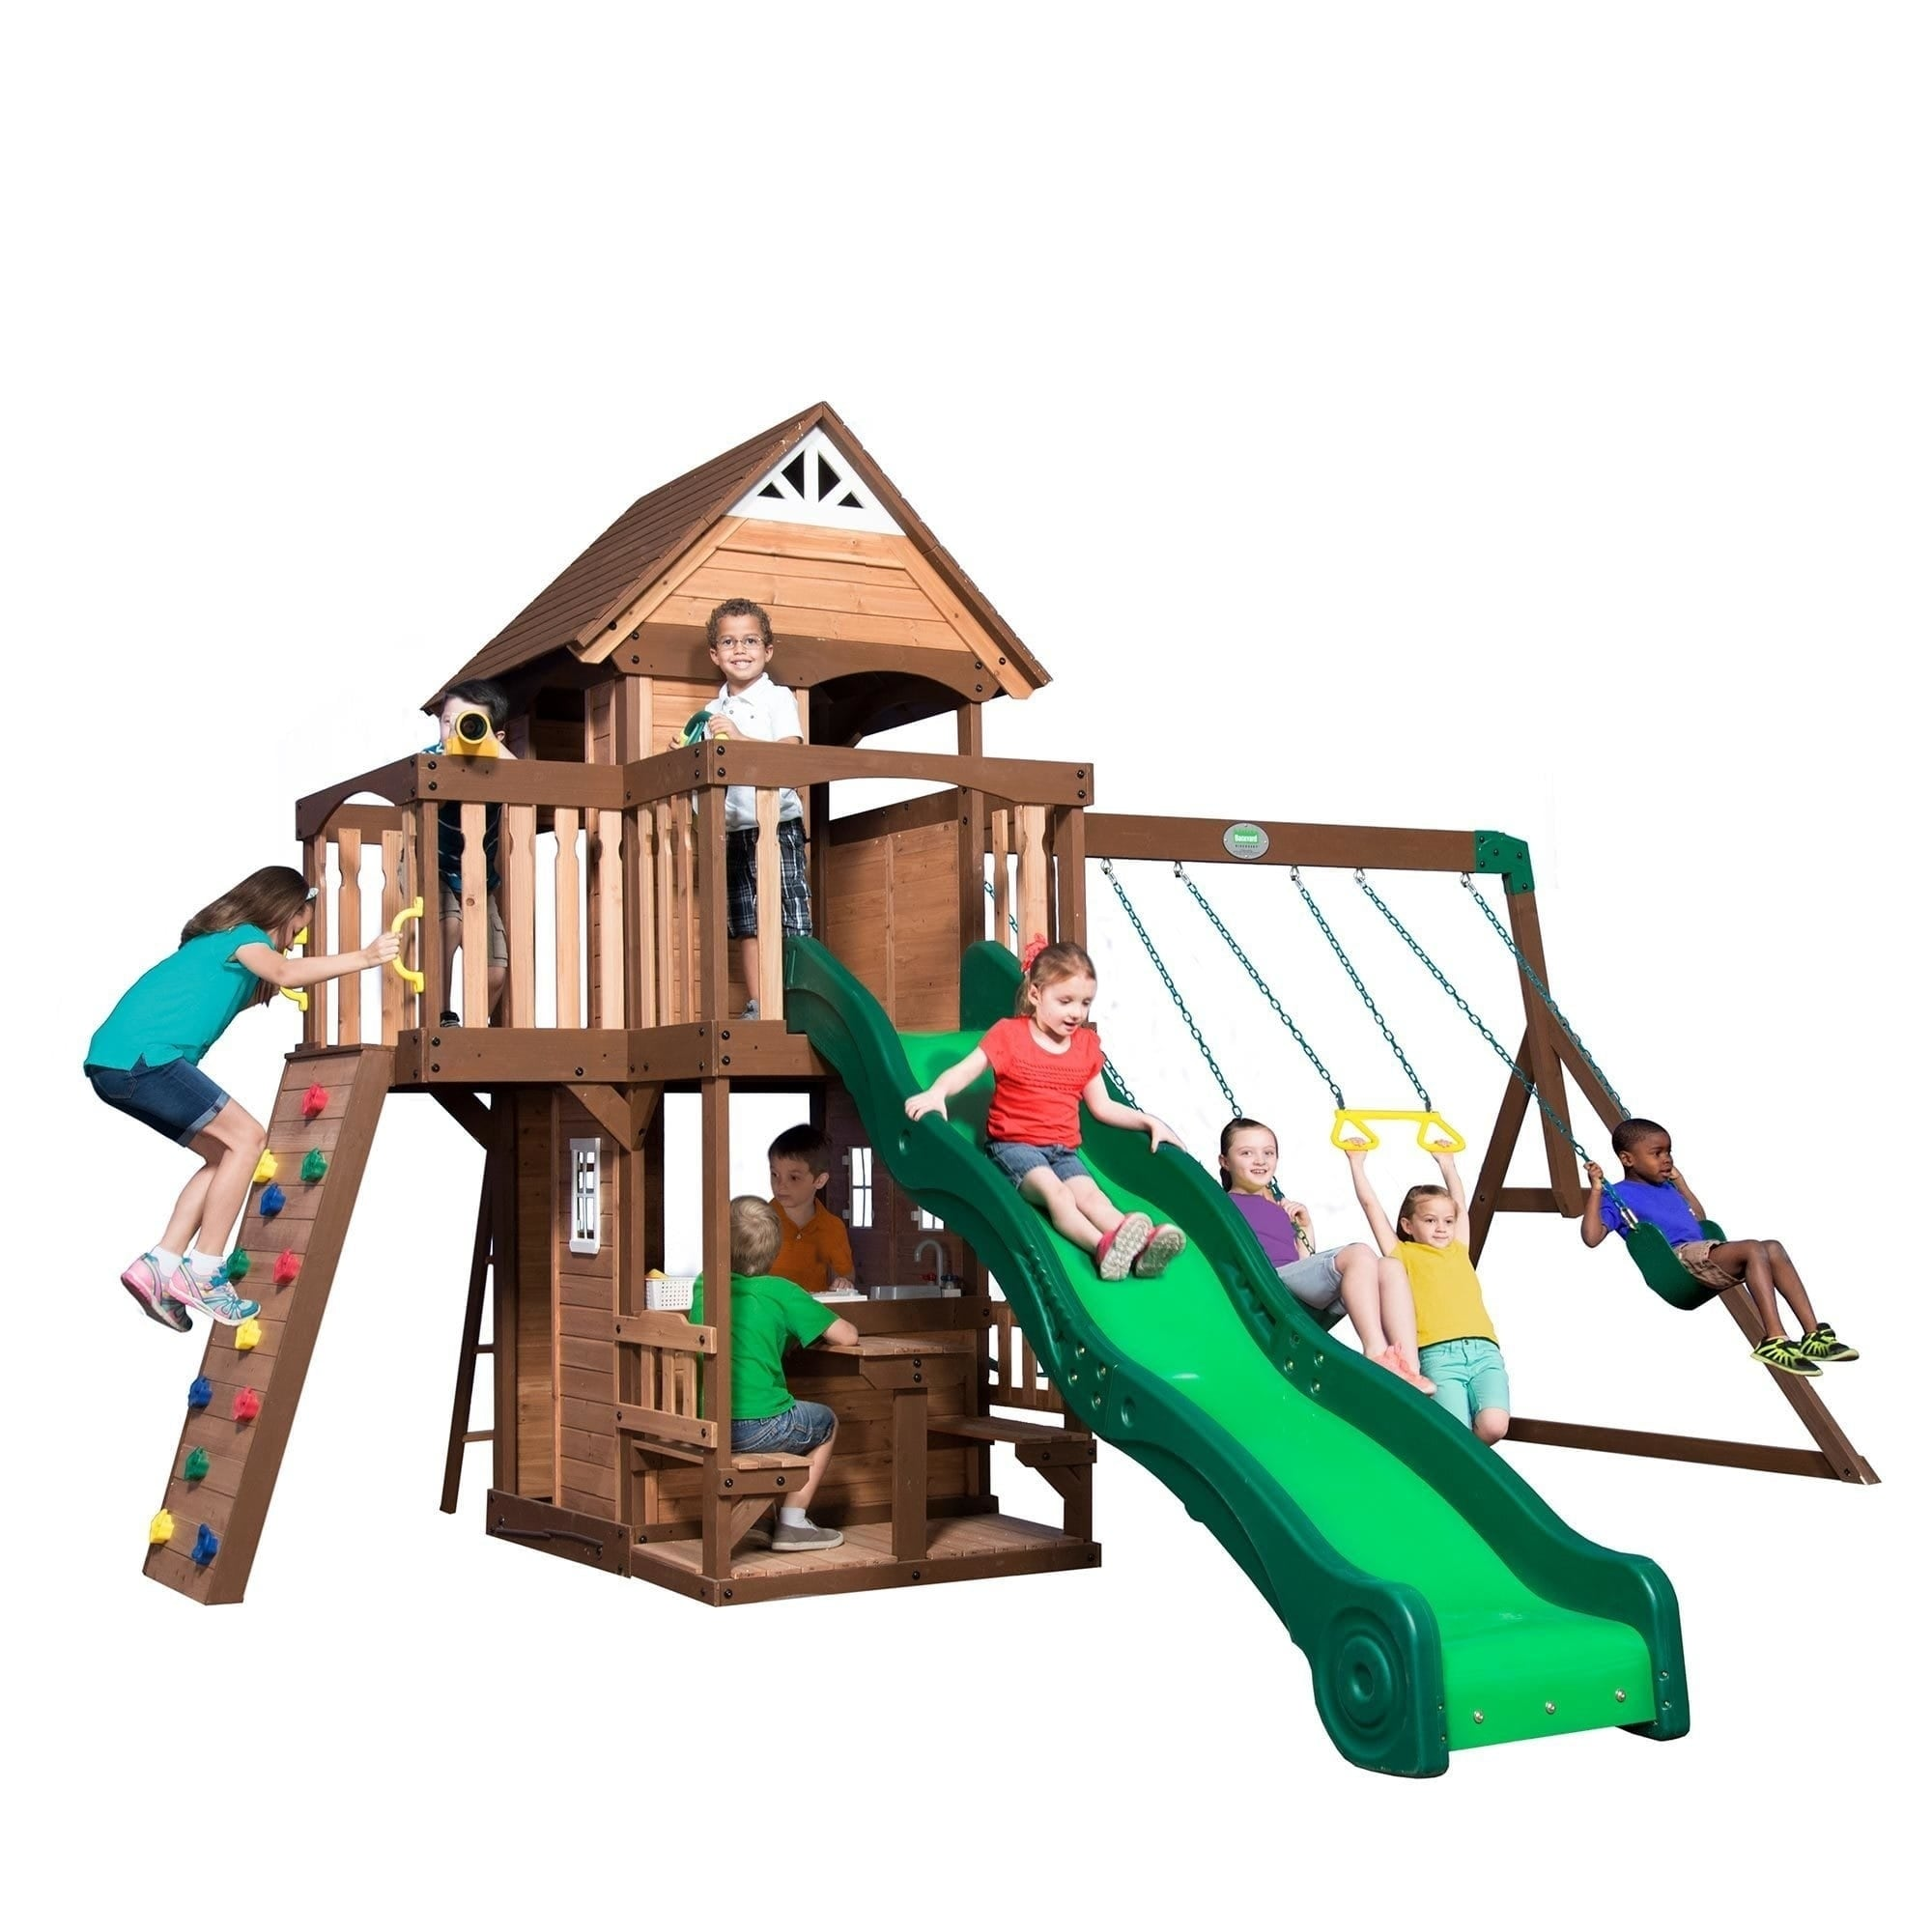 kid set backyard h somerset setbackyard swing wood playsets sets discovery ideas w kids about play